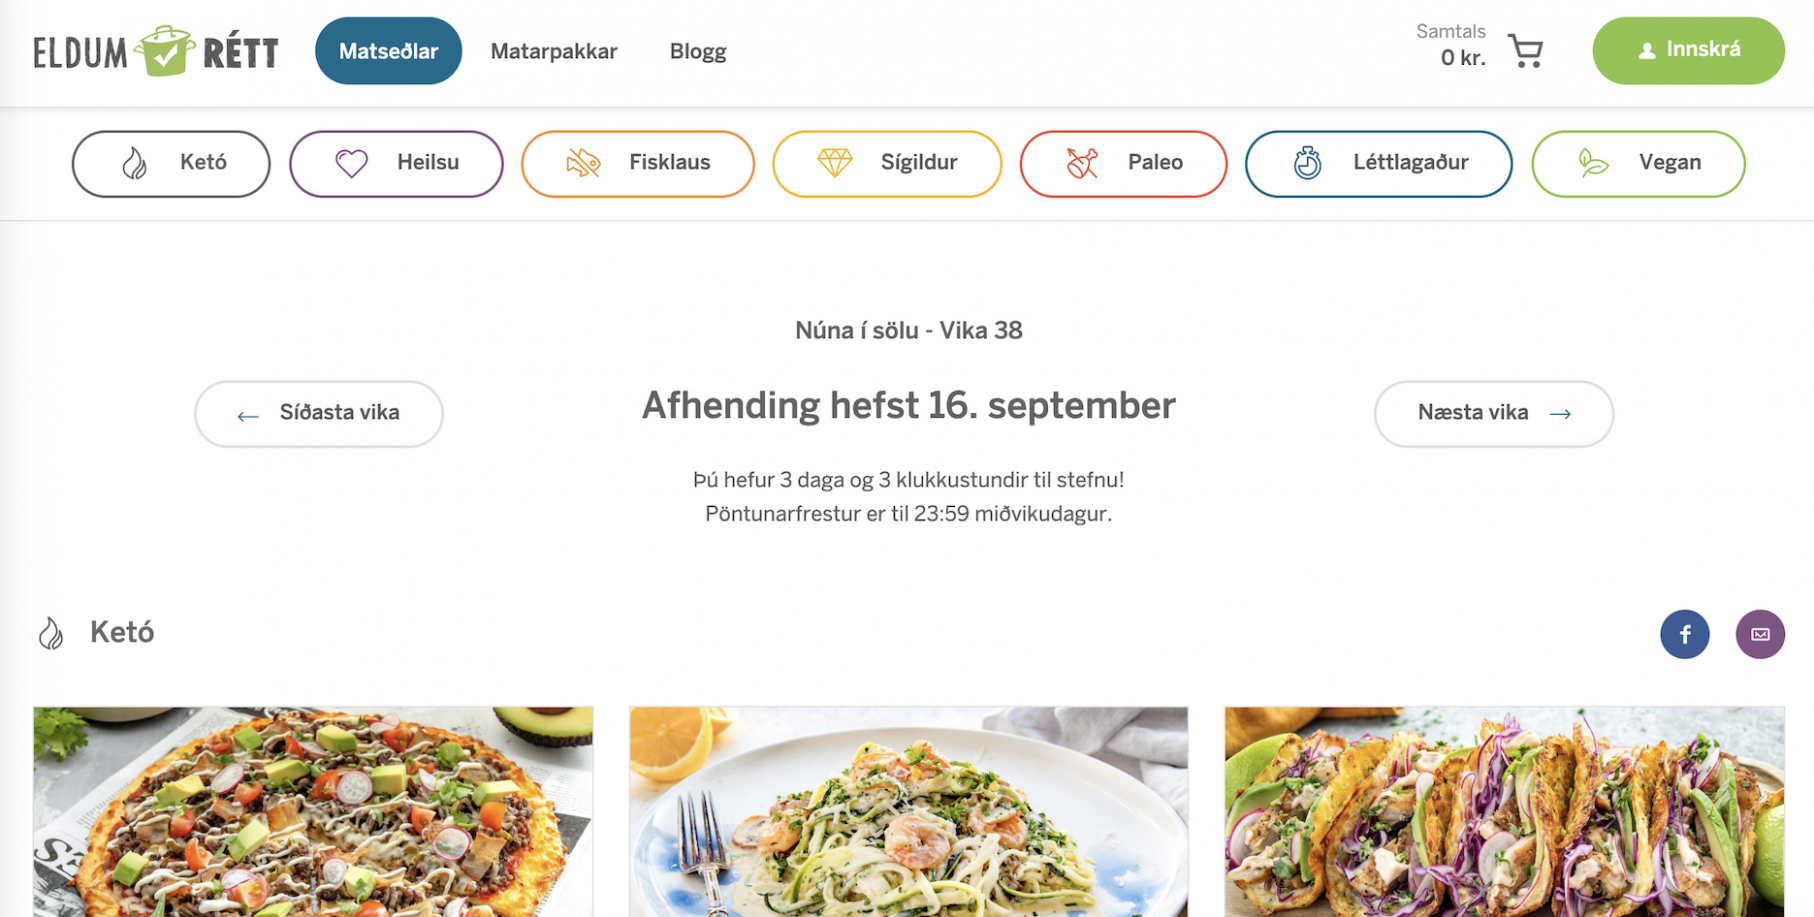 Eldum Rétt - Food delivery service built on Decoupled Drupal ..